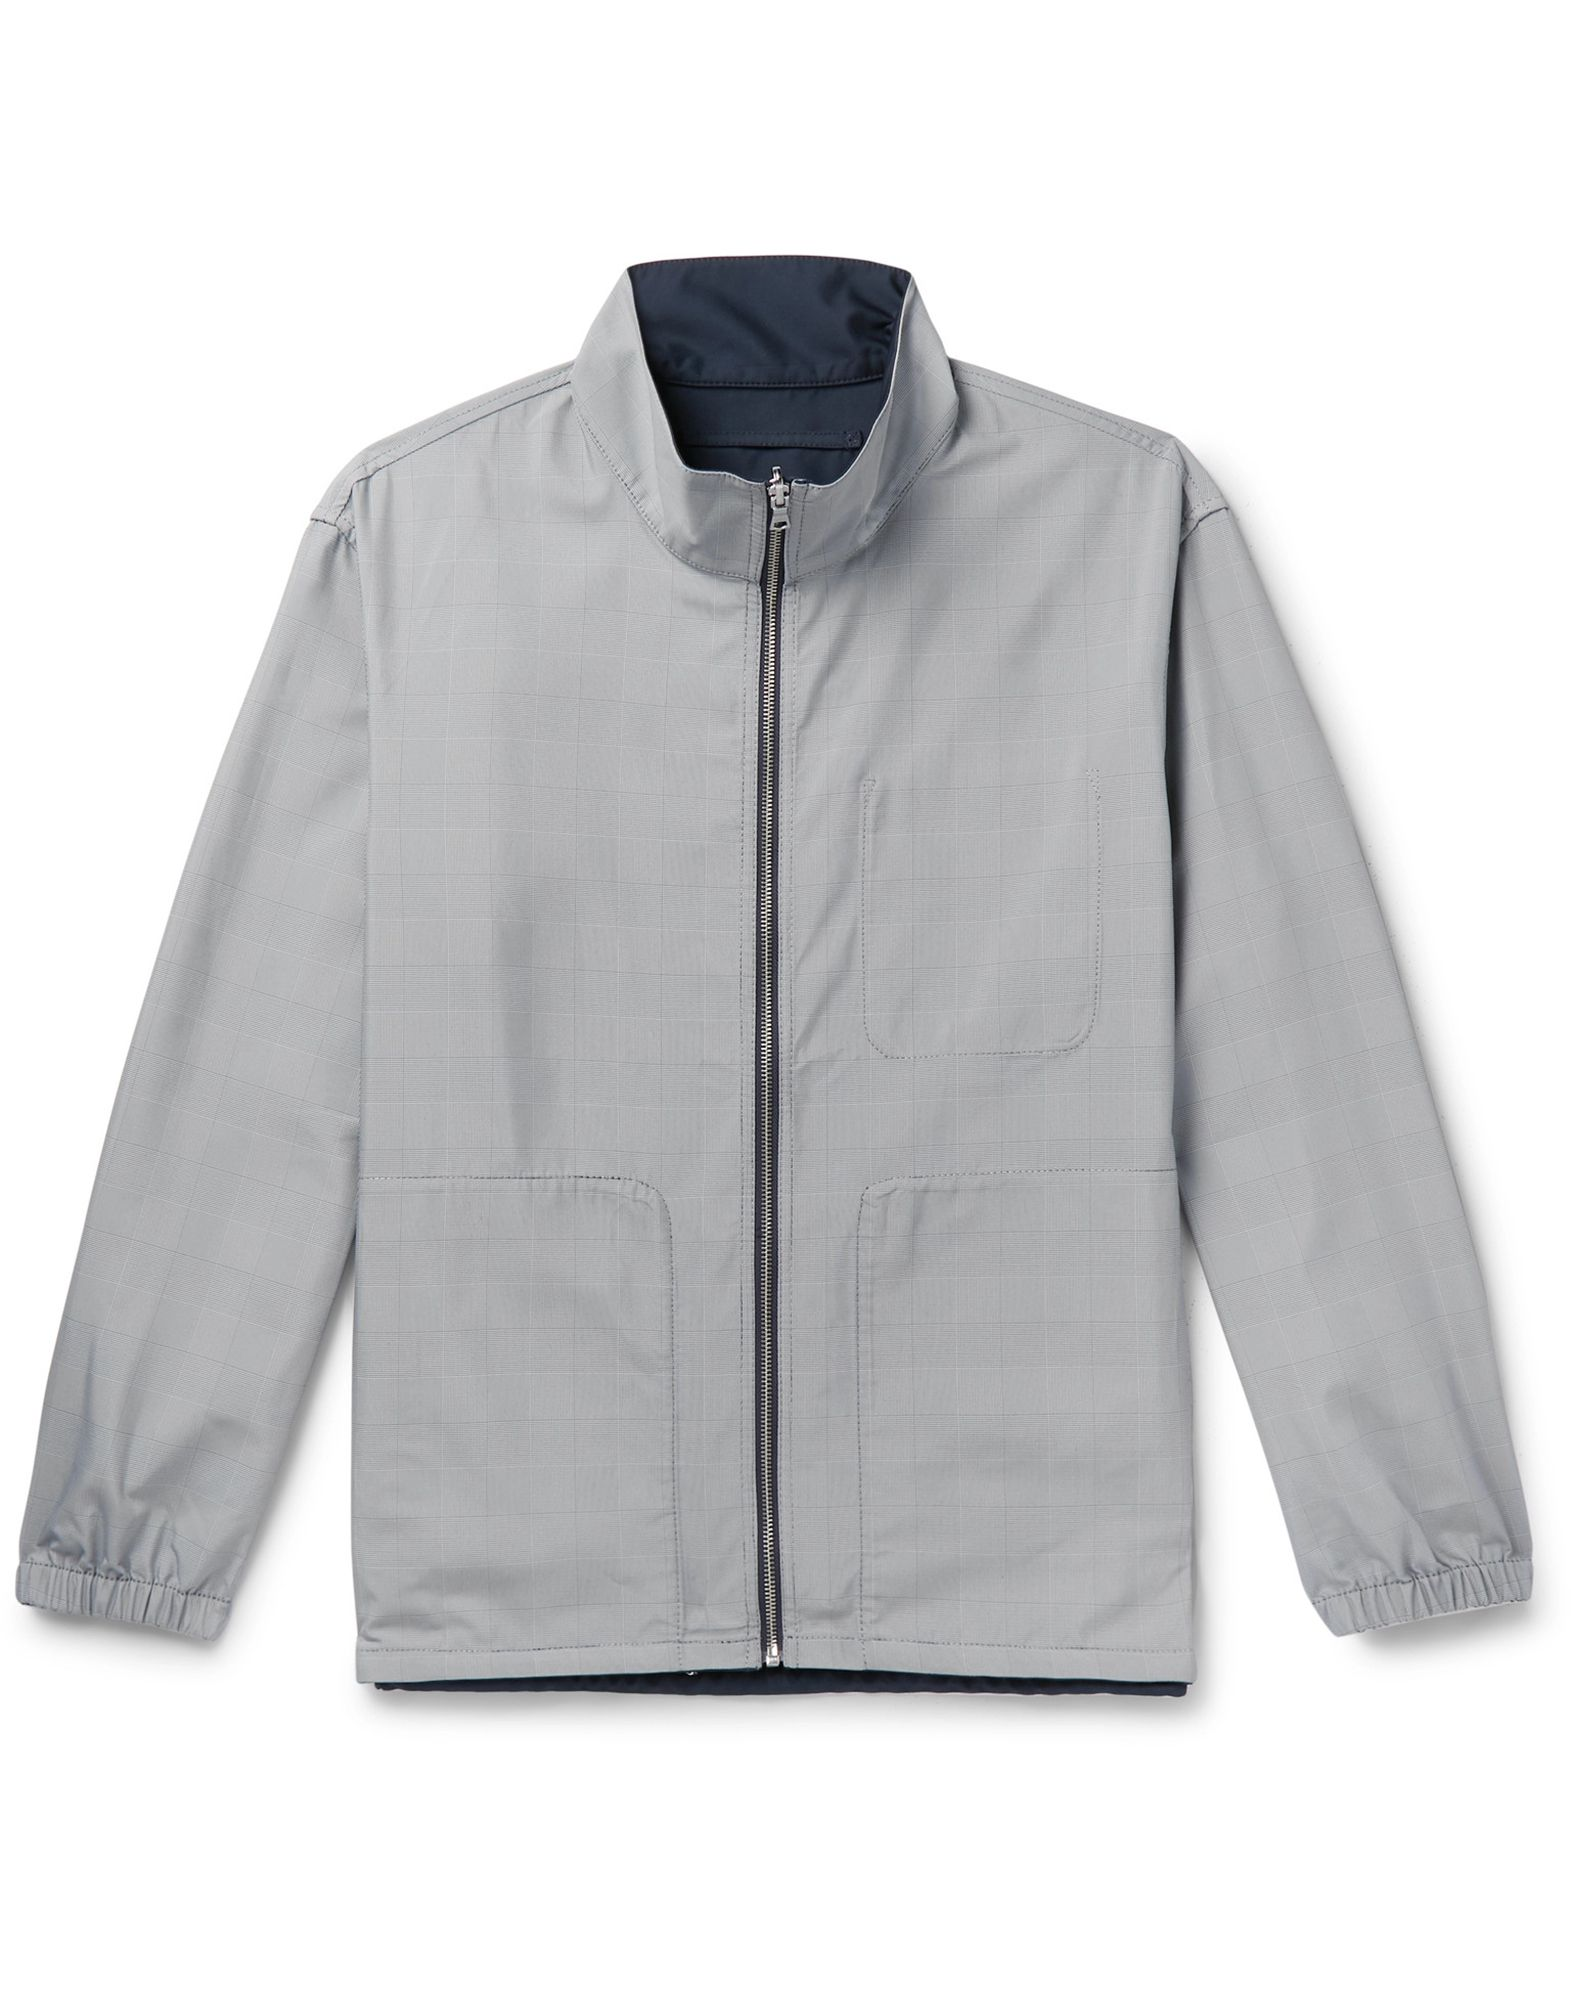 CLUB MONACO Jackets. techno fabric, no appliqués, glen plaid, single-breasted, zipper closure, turtleneck, multipockets, long sleeves, elasticated cuffs, fully lined, double face. 100% Polyester